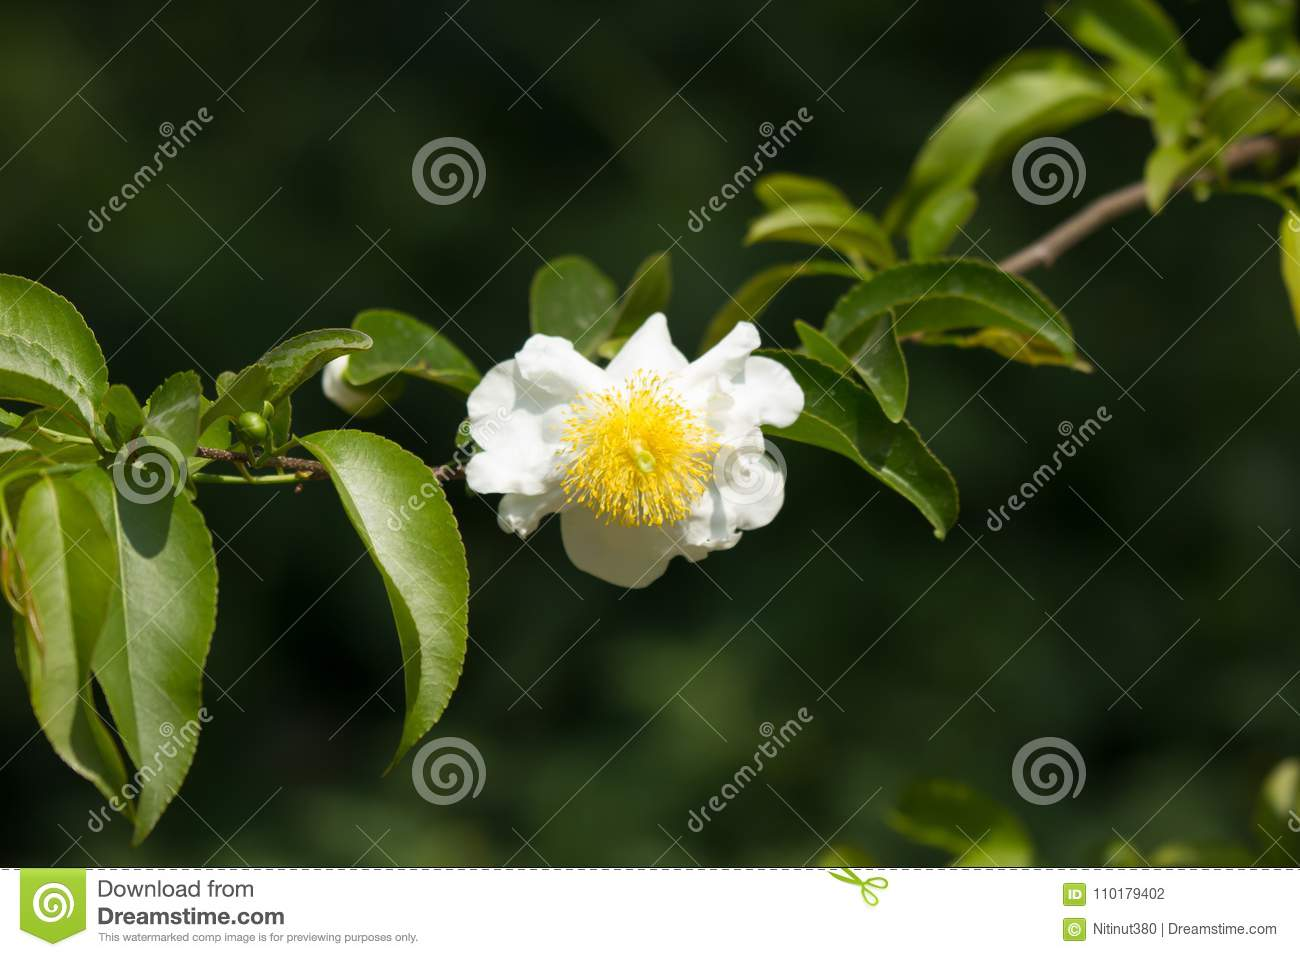 Fried Egg Tree Or Oncoba Spinosa Forssk Stock Photo Image Of Tree